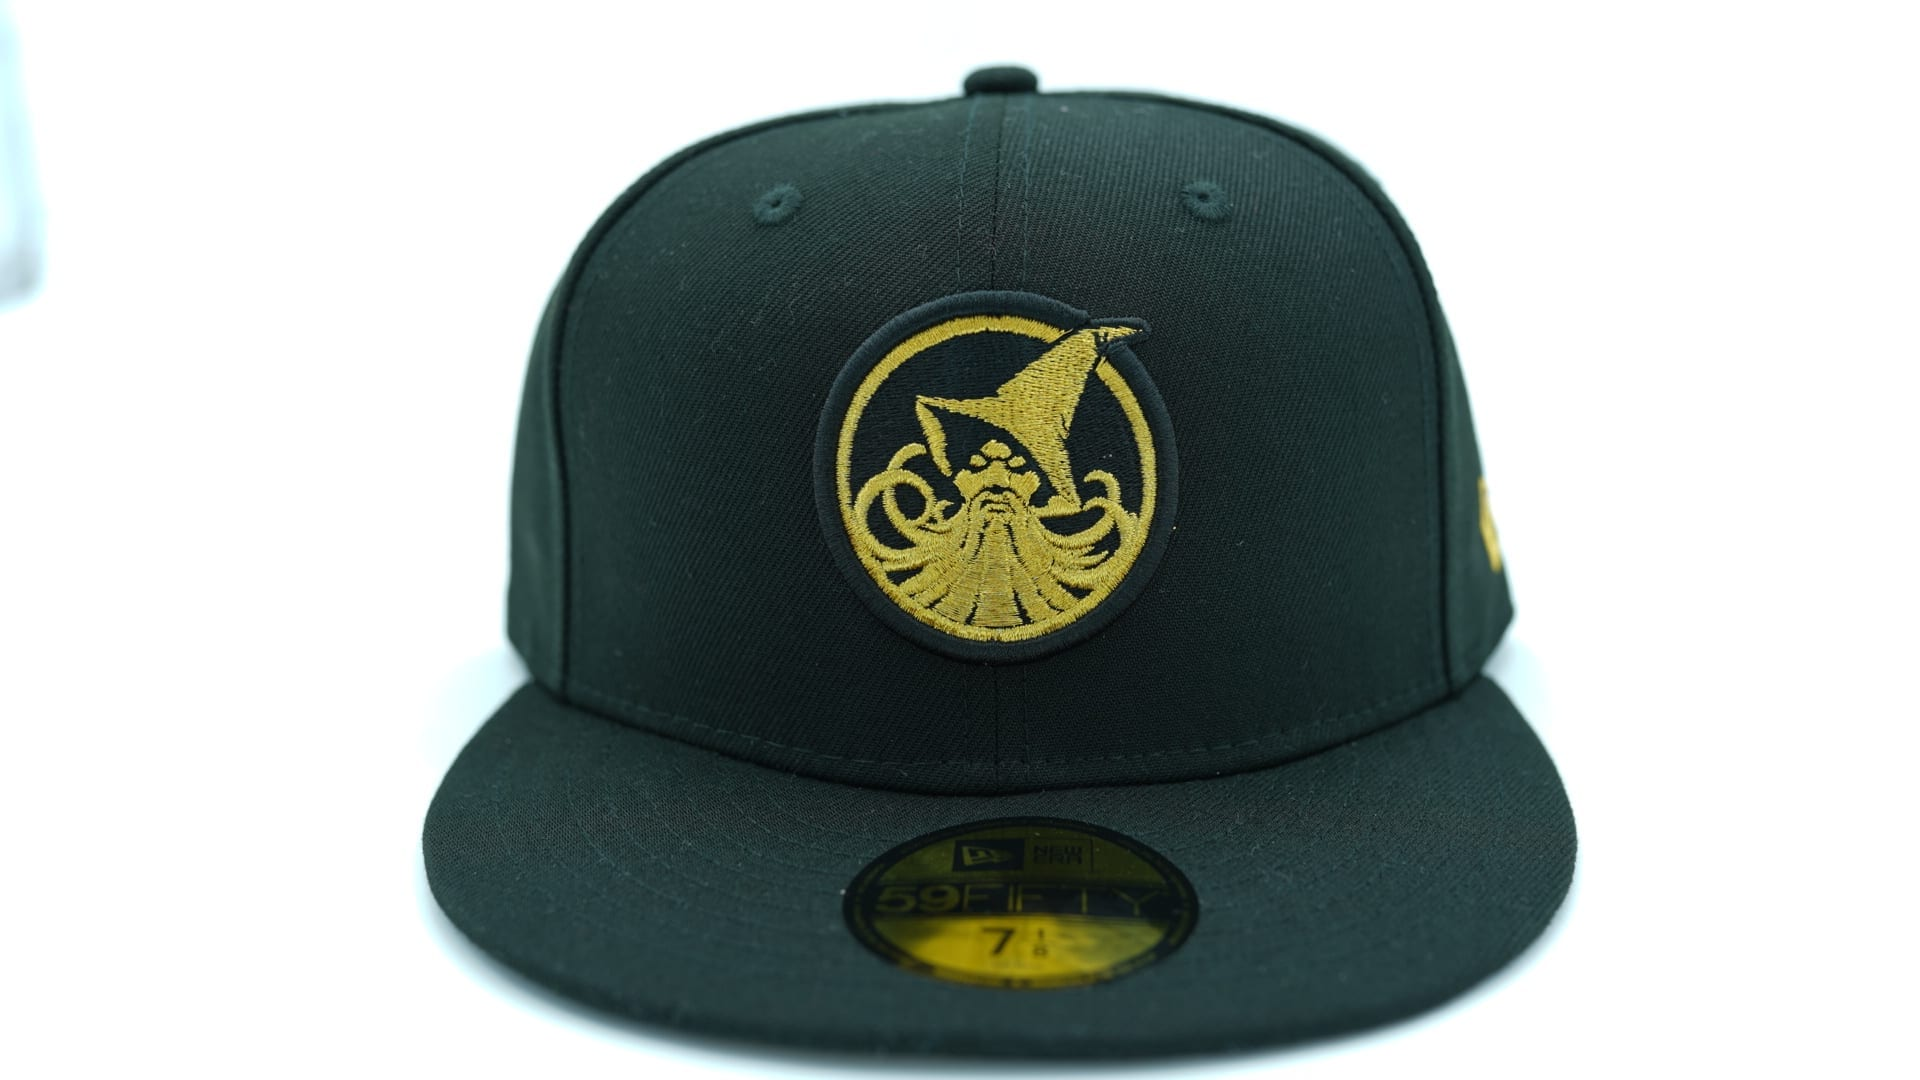 Salt Lake Bees Alternate White/Black 59Fifty Fitted Cap by NEW ERA x MiLB